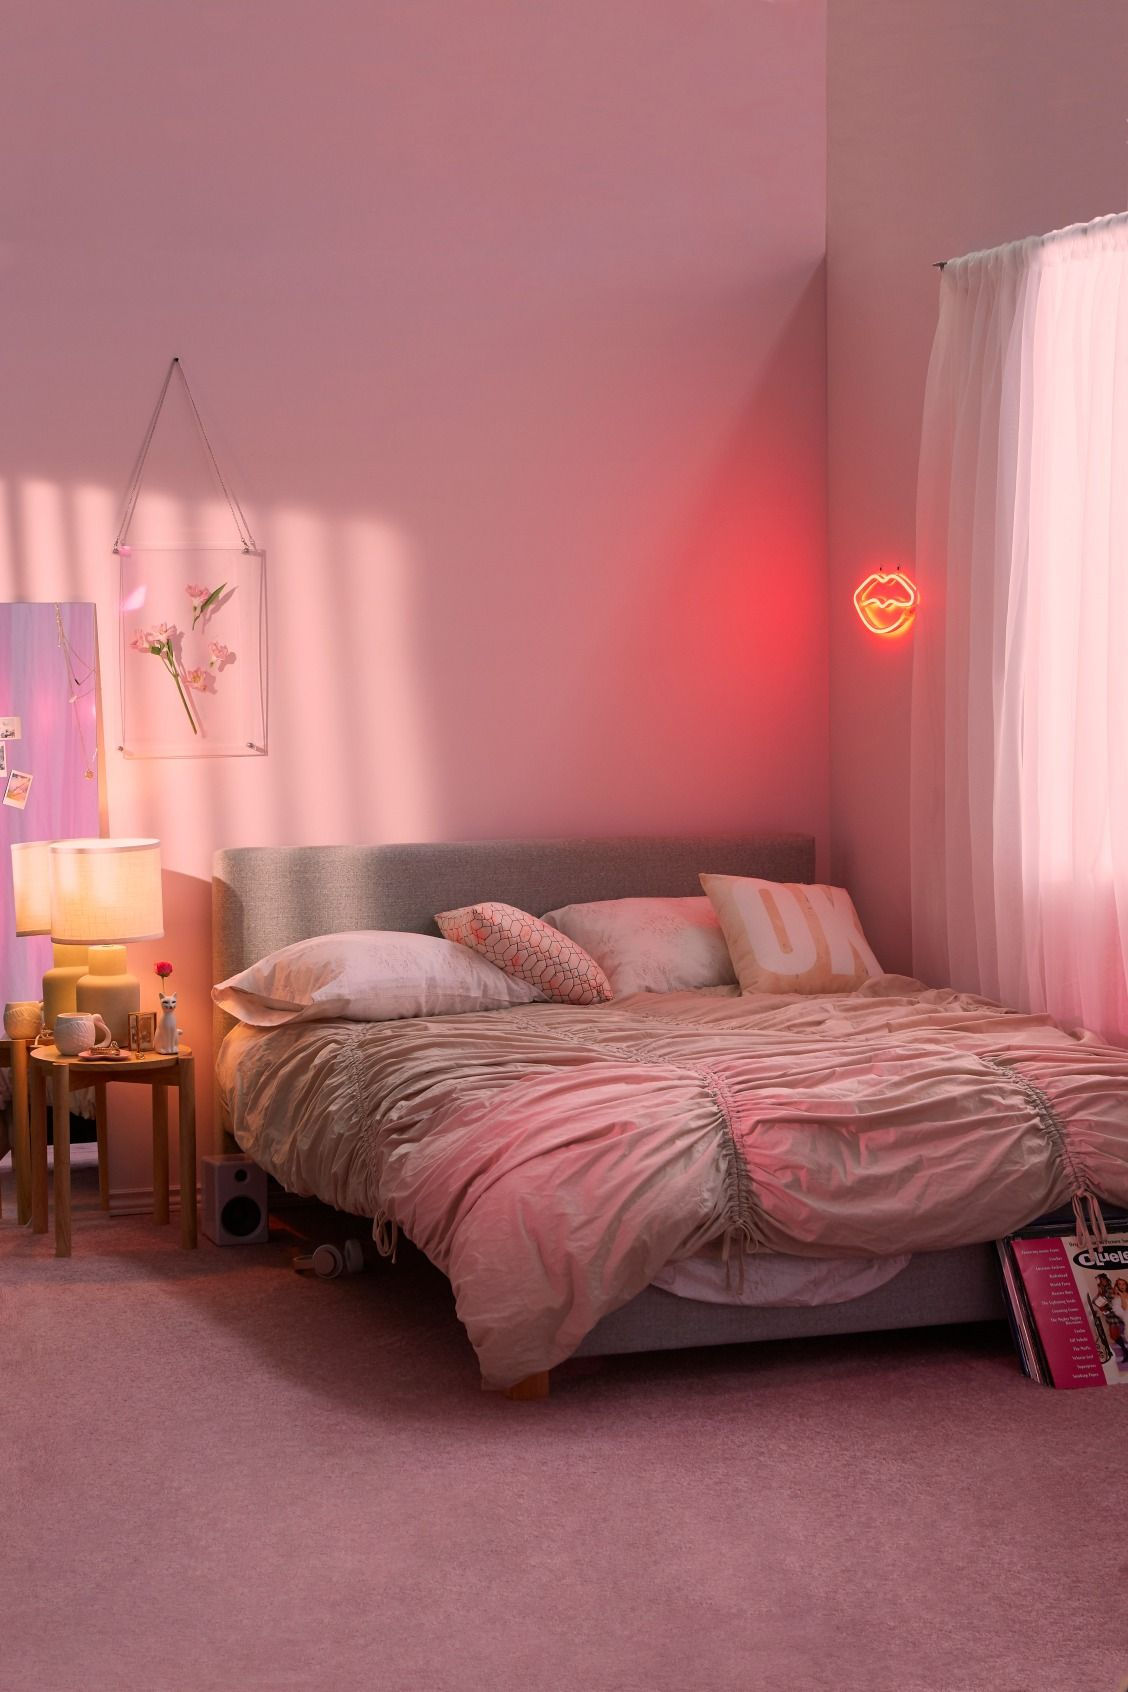 pink bedroom images alexandrahuffy bedding 12842